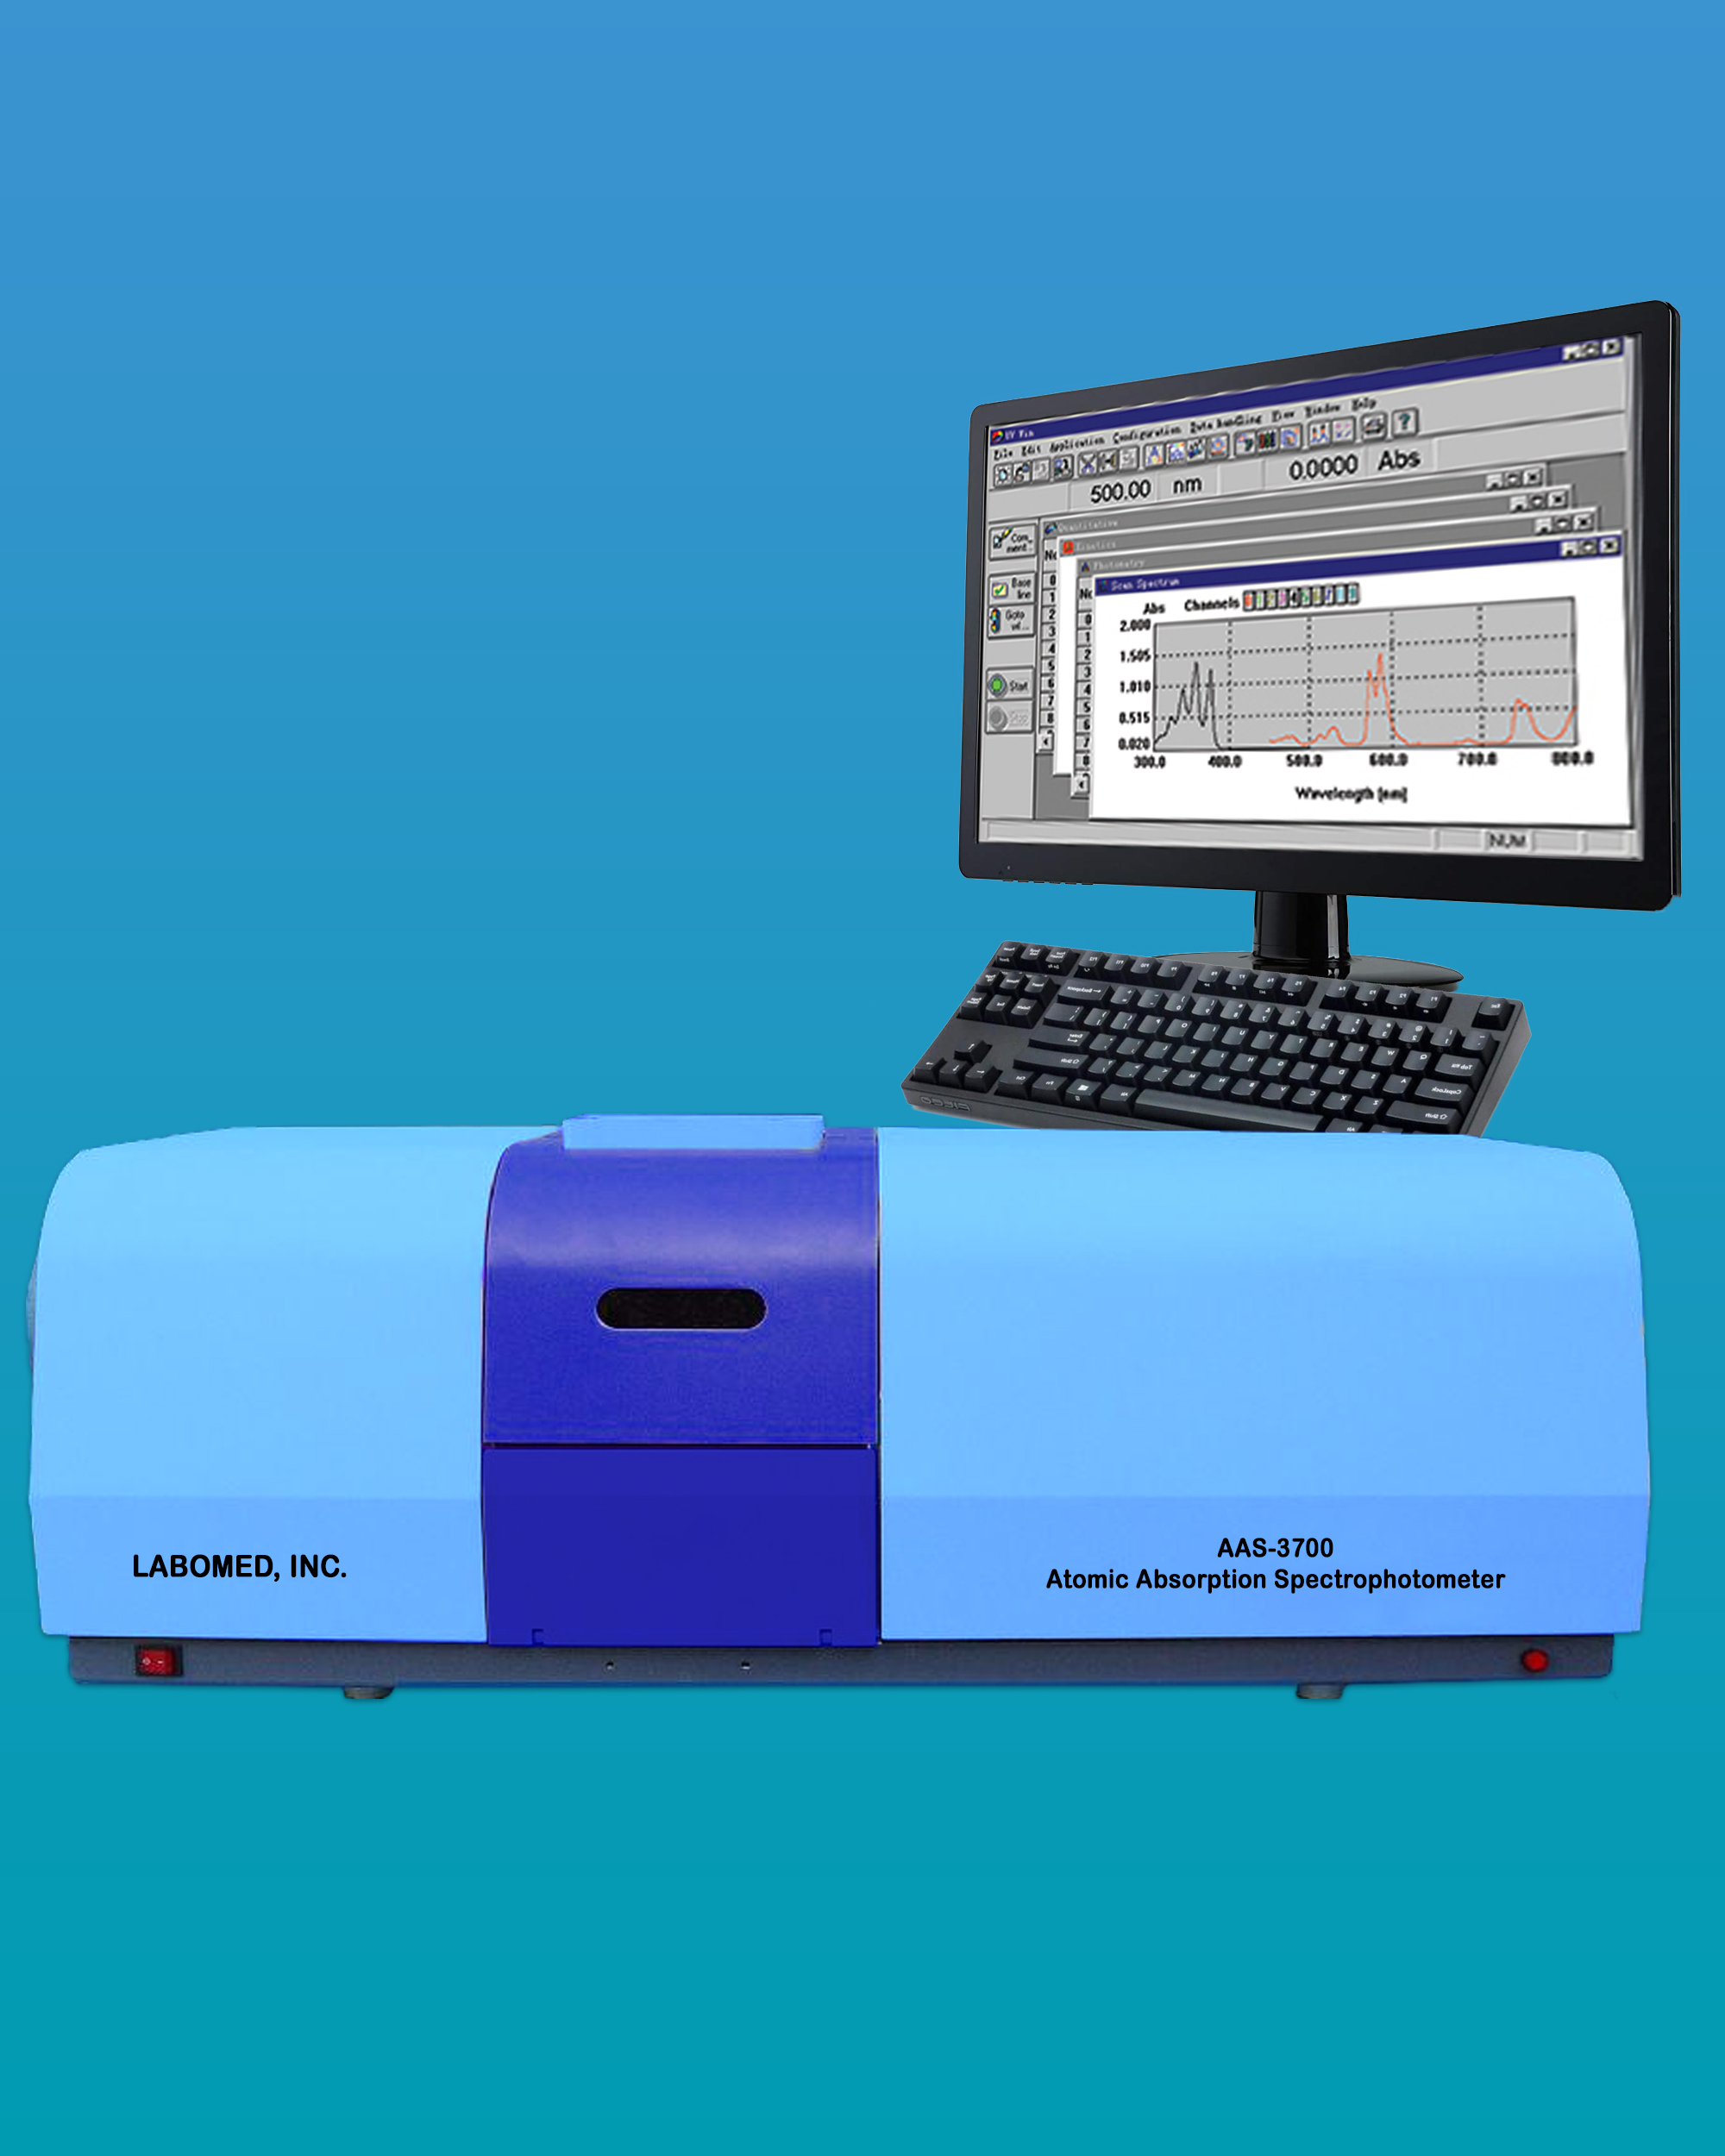 [AAS-3700] Atomic Absorption Spectrophotometer - Flame System